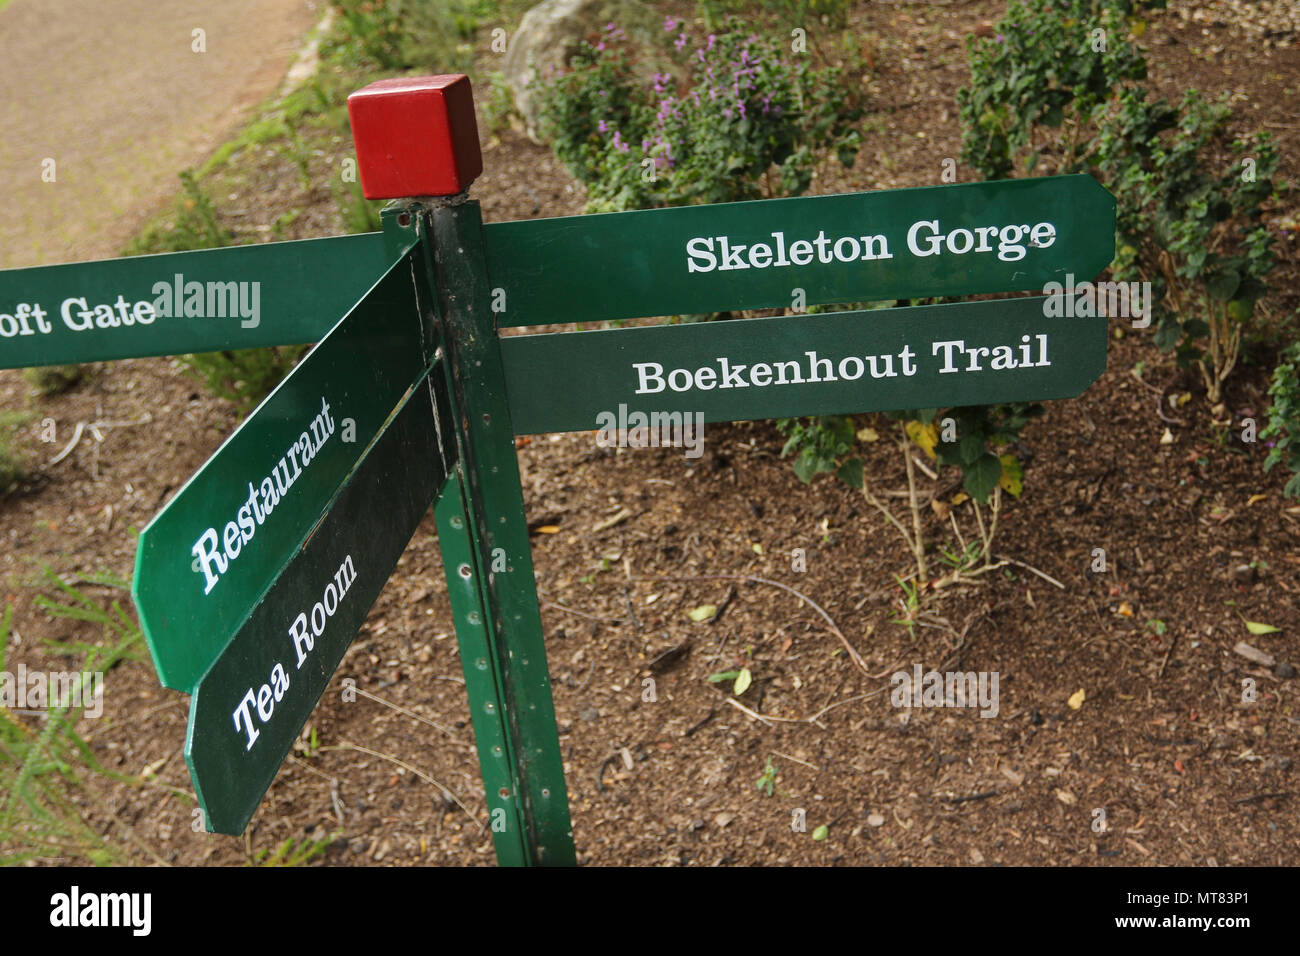 Trail signpost in Kirkenbosch botanic gardens, Capetown, South Africa - Stock Image